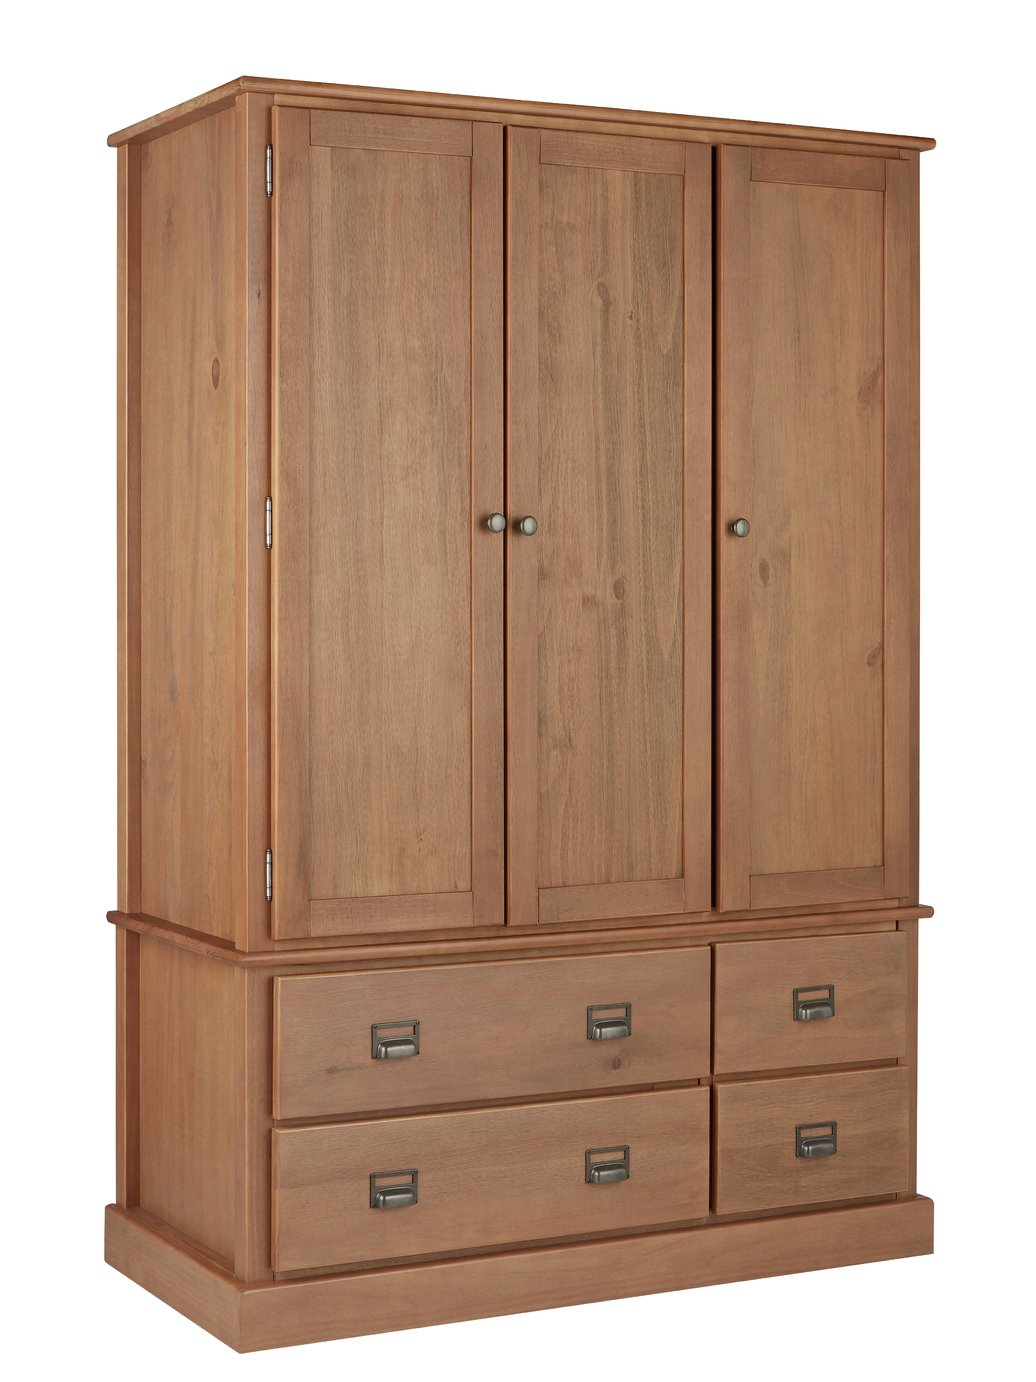 Argos Home Drury 3 Door 4 Drawer Wardrobe